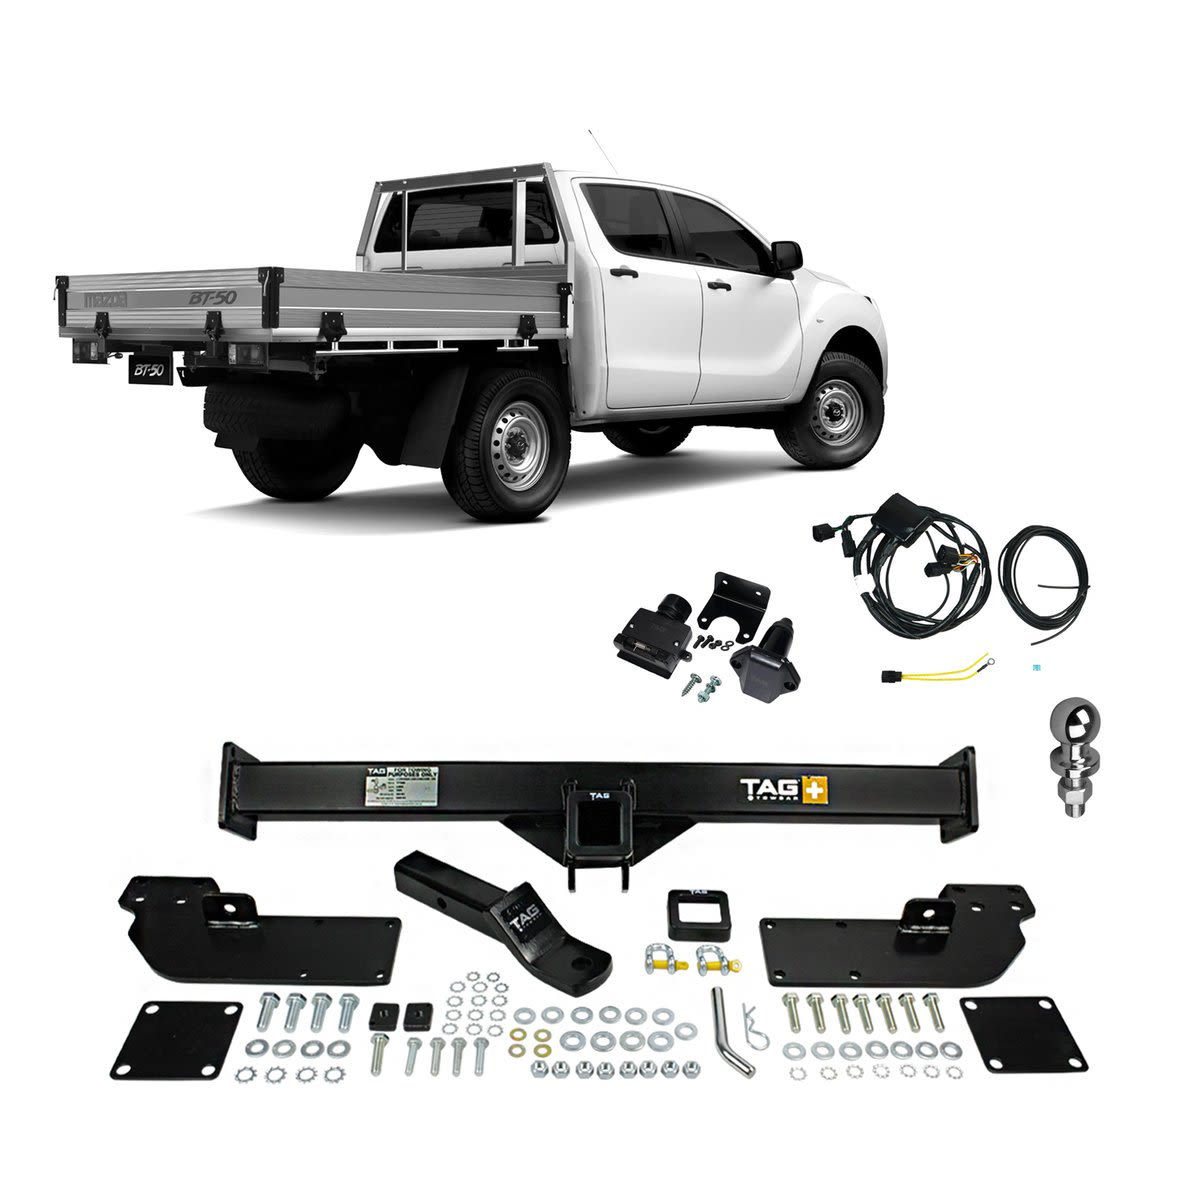 TAG Heavy Duty Towbar to suit Ford Ranger (01/2011 - on), Mazda BT-50 (11/2011 - on)